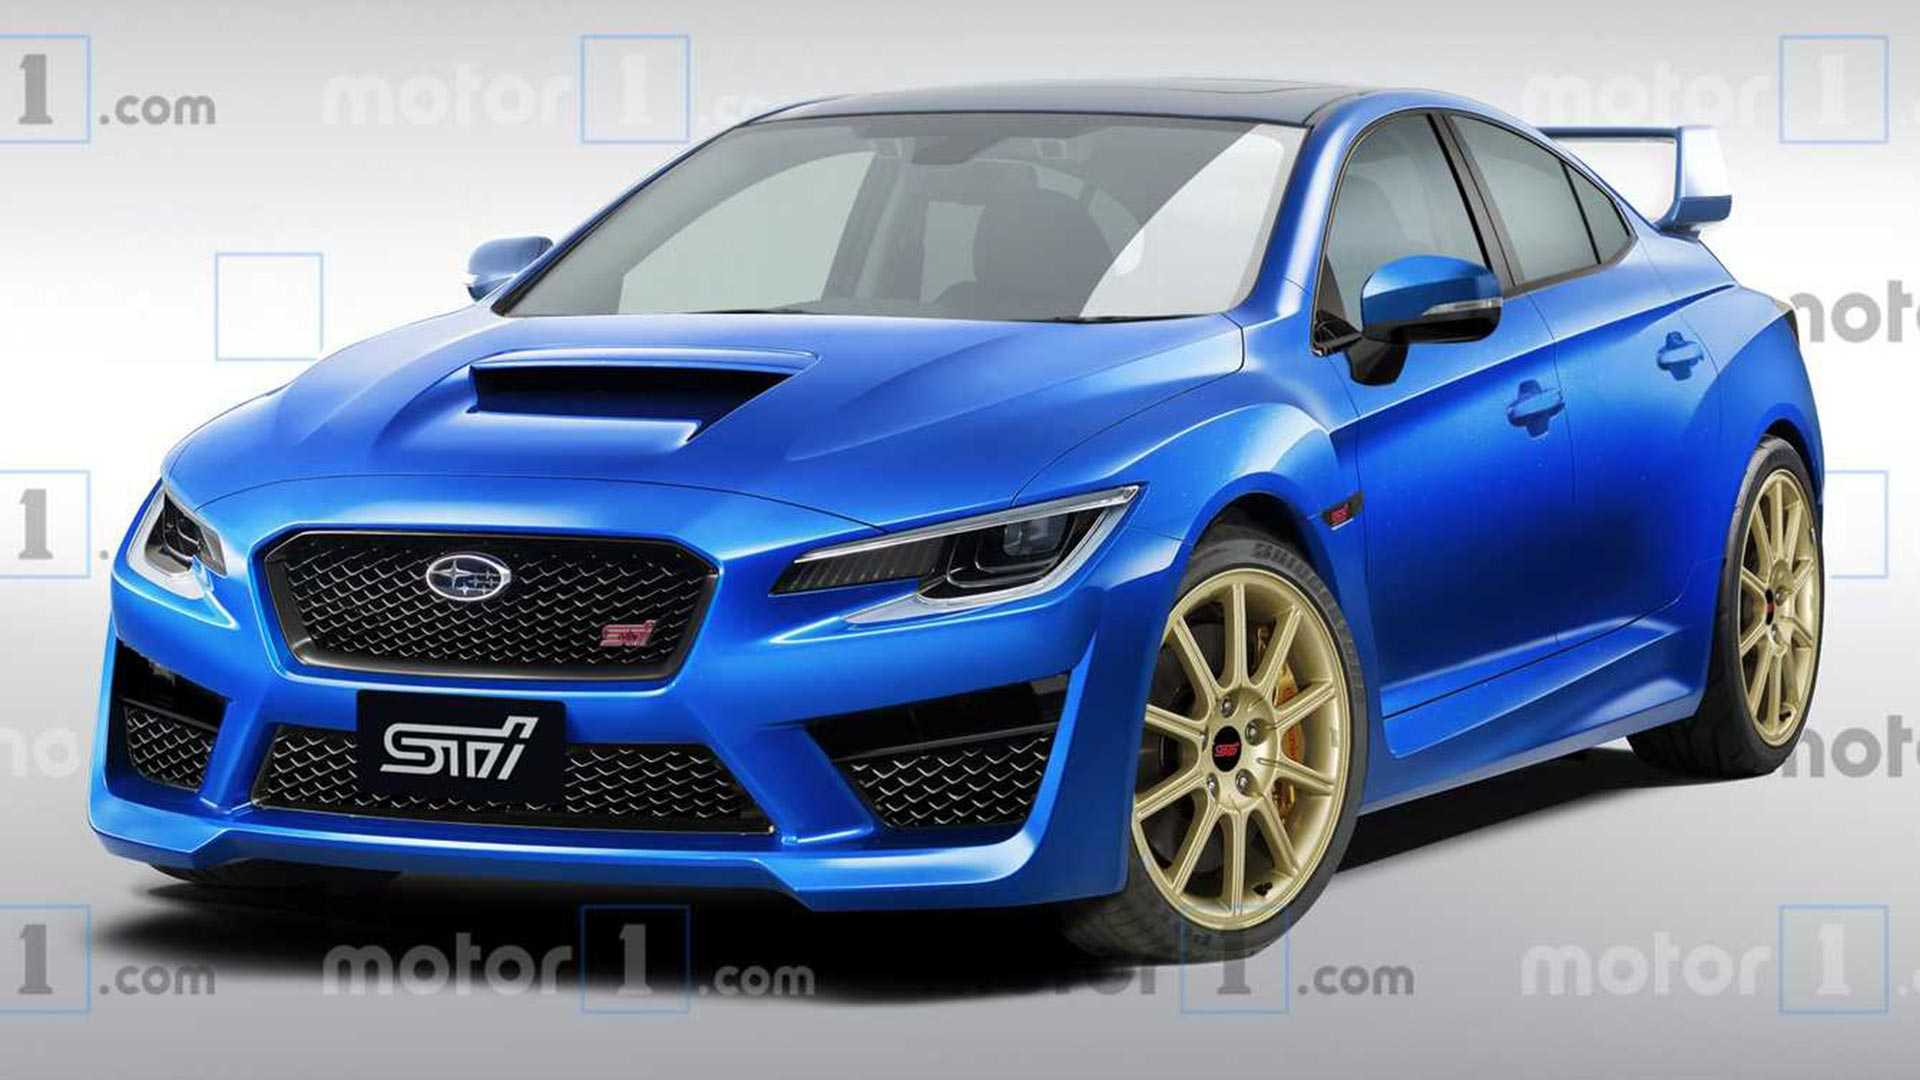 90 All New Subaru Hatchback Sti 2020 Research New